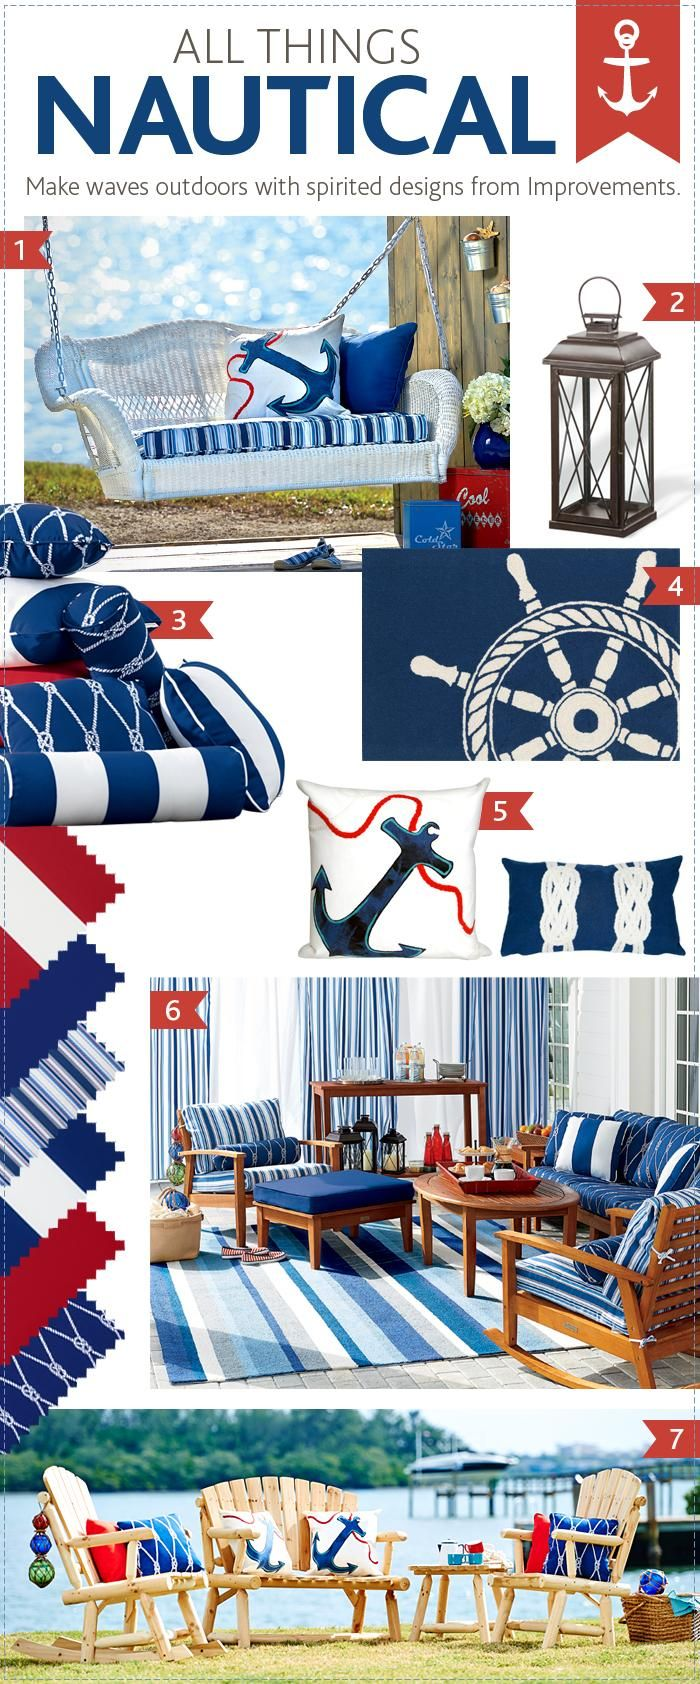 All things nautical. What outdoor decor theme inspires you?